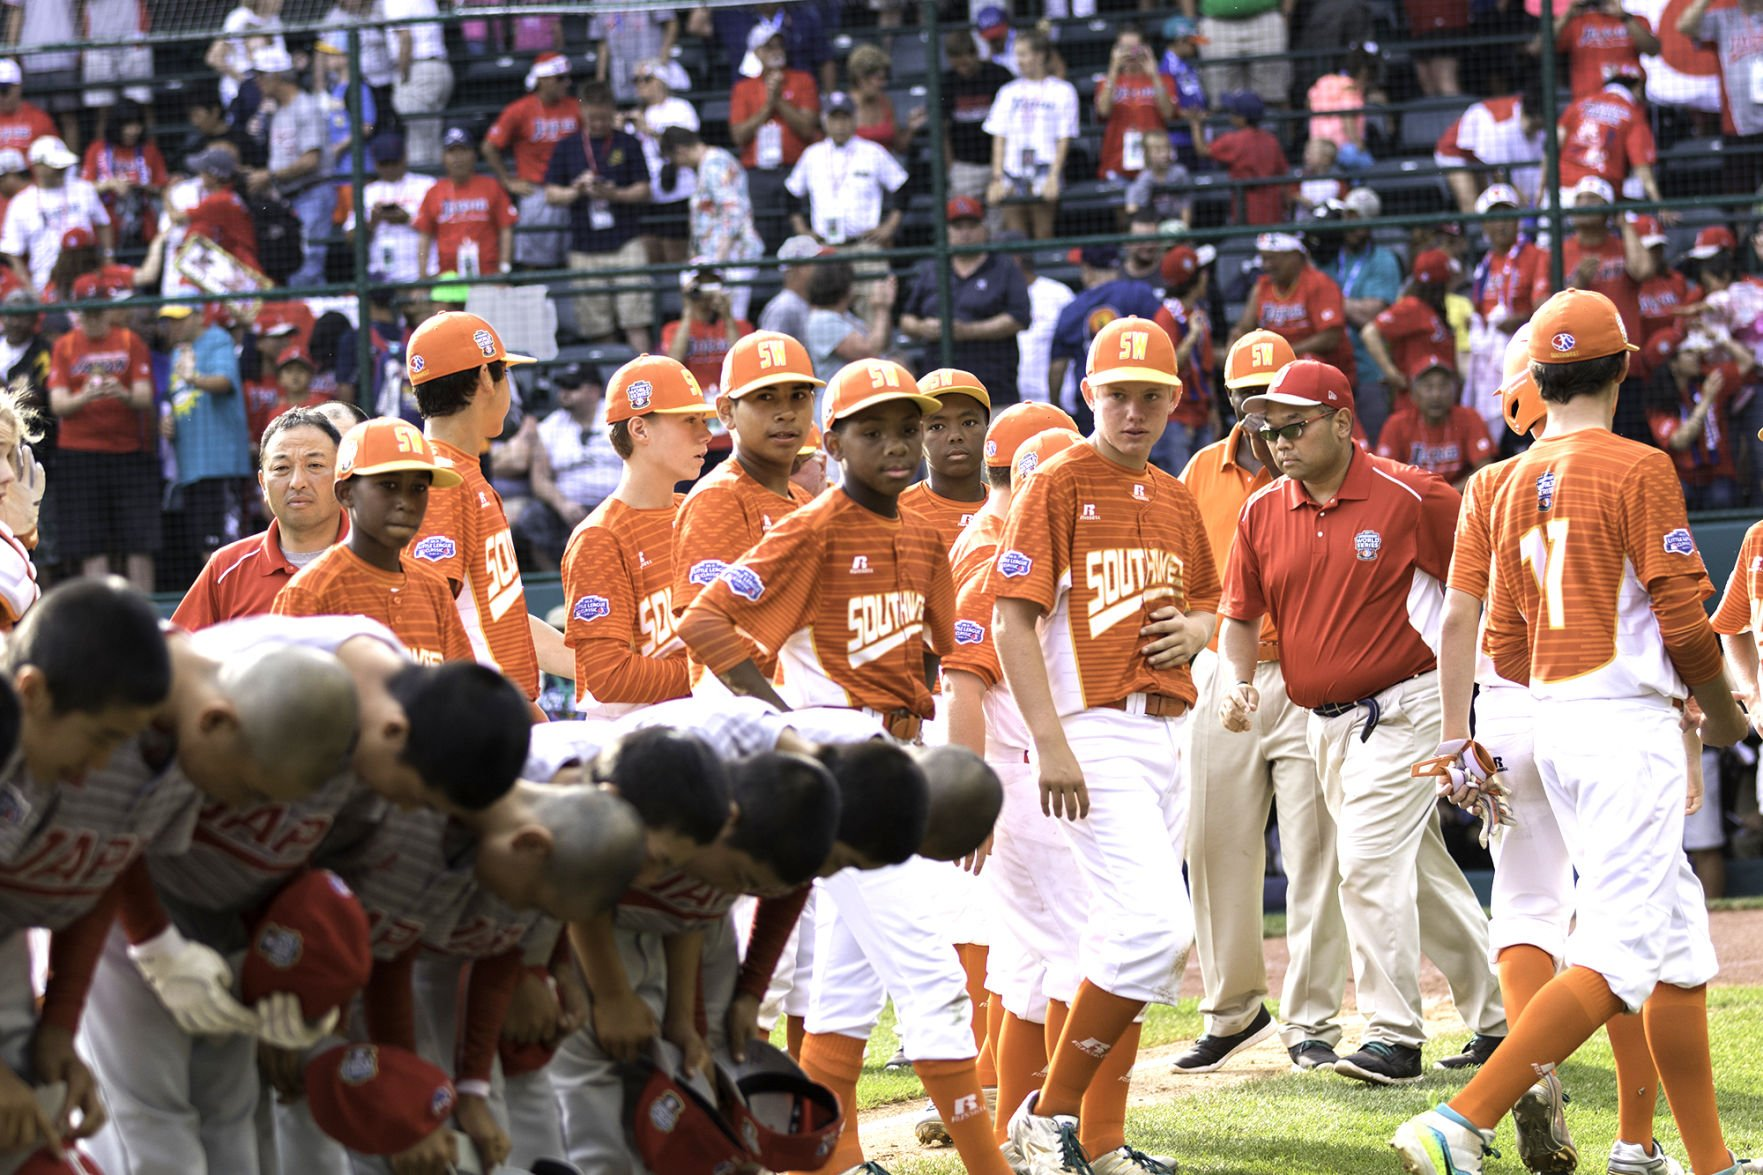 Japan overpowers Texas to win Little League Series